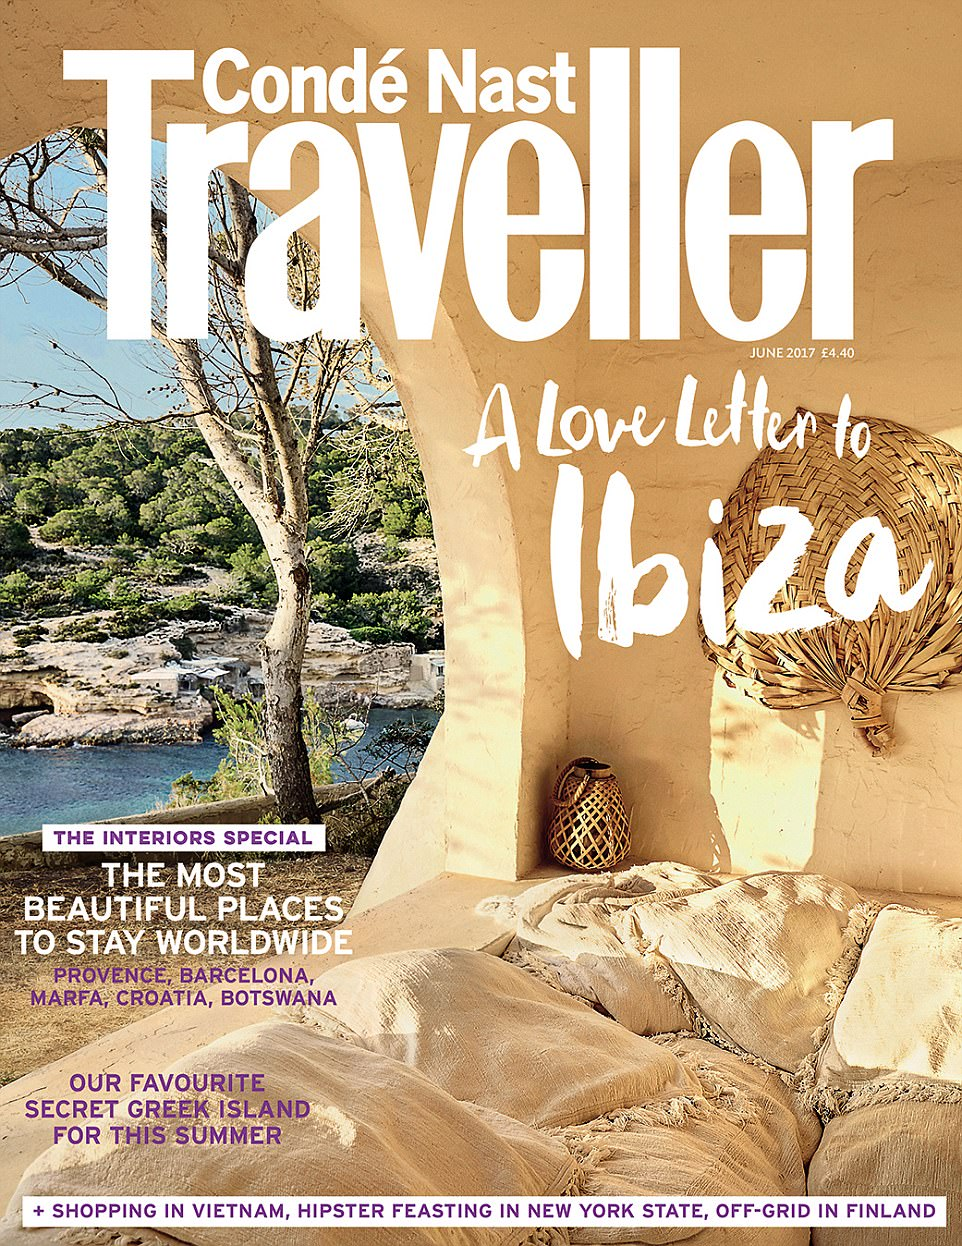 The World¿s Best Family Holidays supplement accompanies the June issue of Condé Nast Traveller, on sale now and downloadable from here